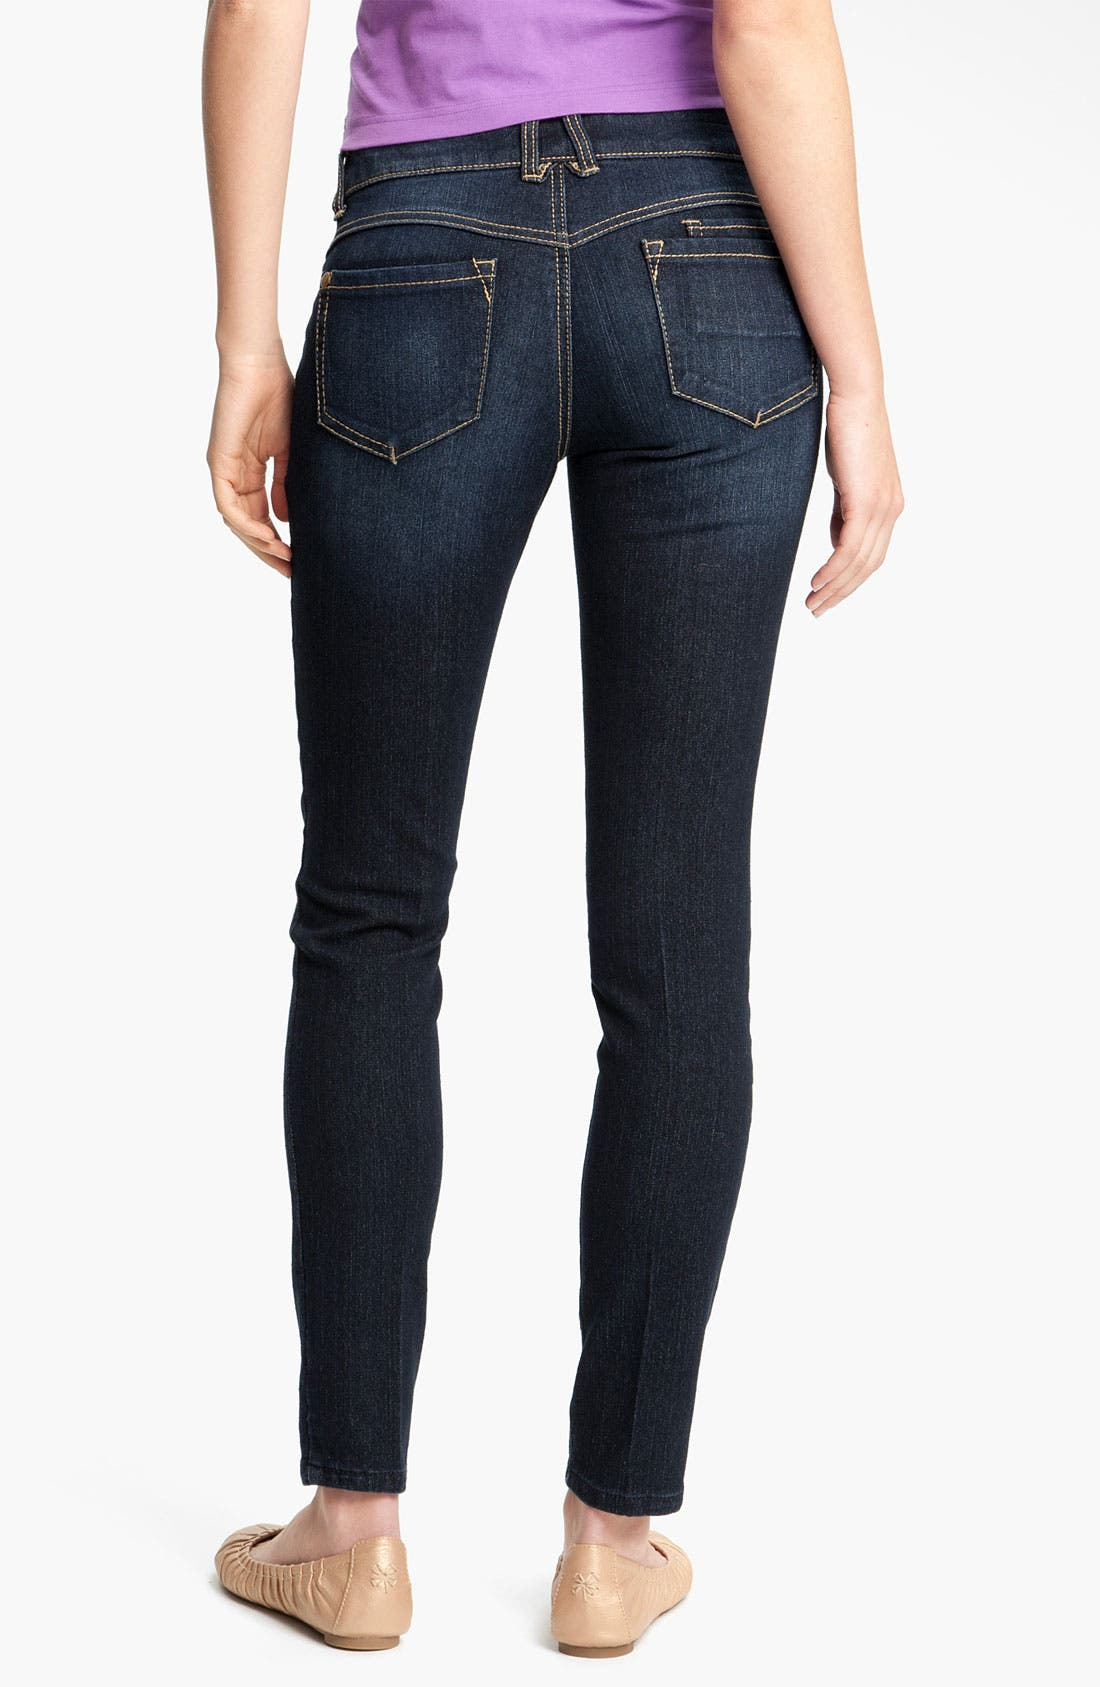 Alternate Image 1 Selected - Jolt Stretch Skinny Jeans (Juniors)